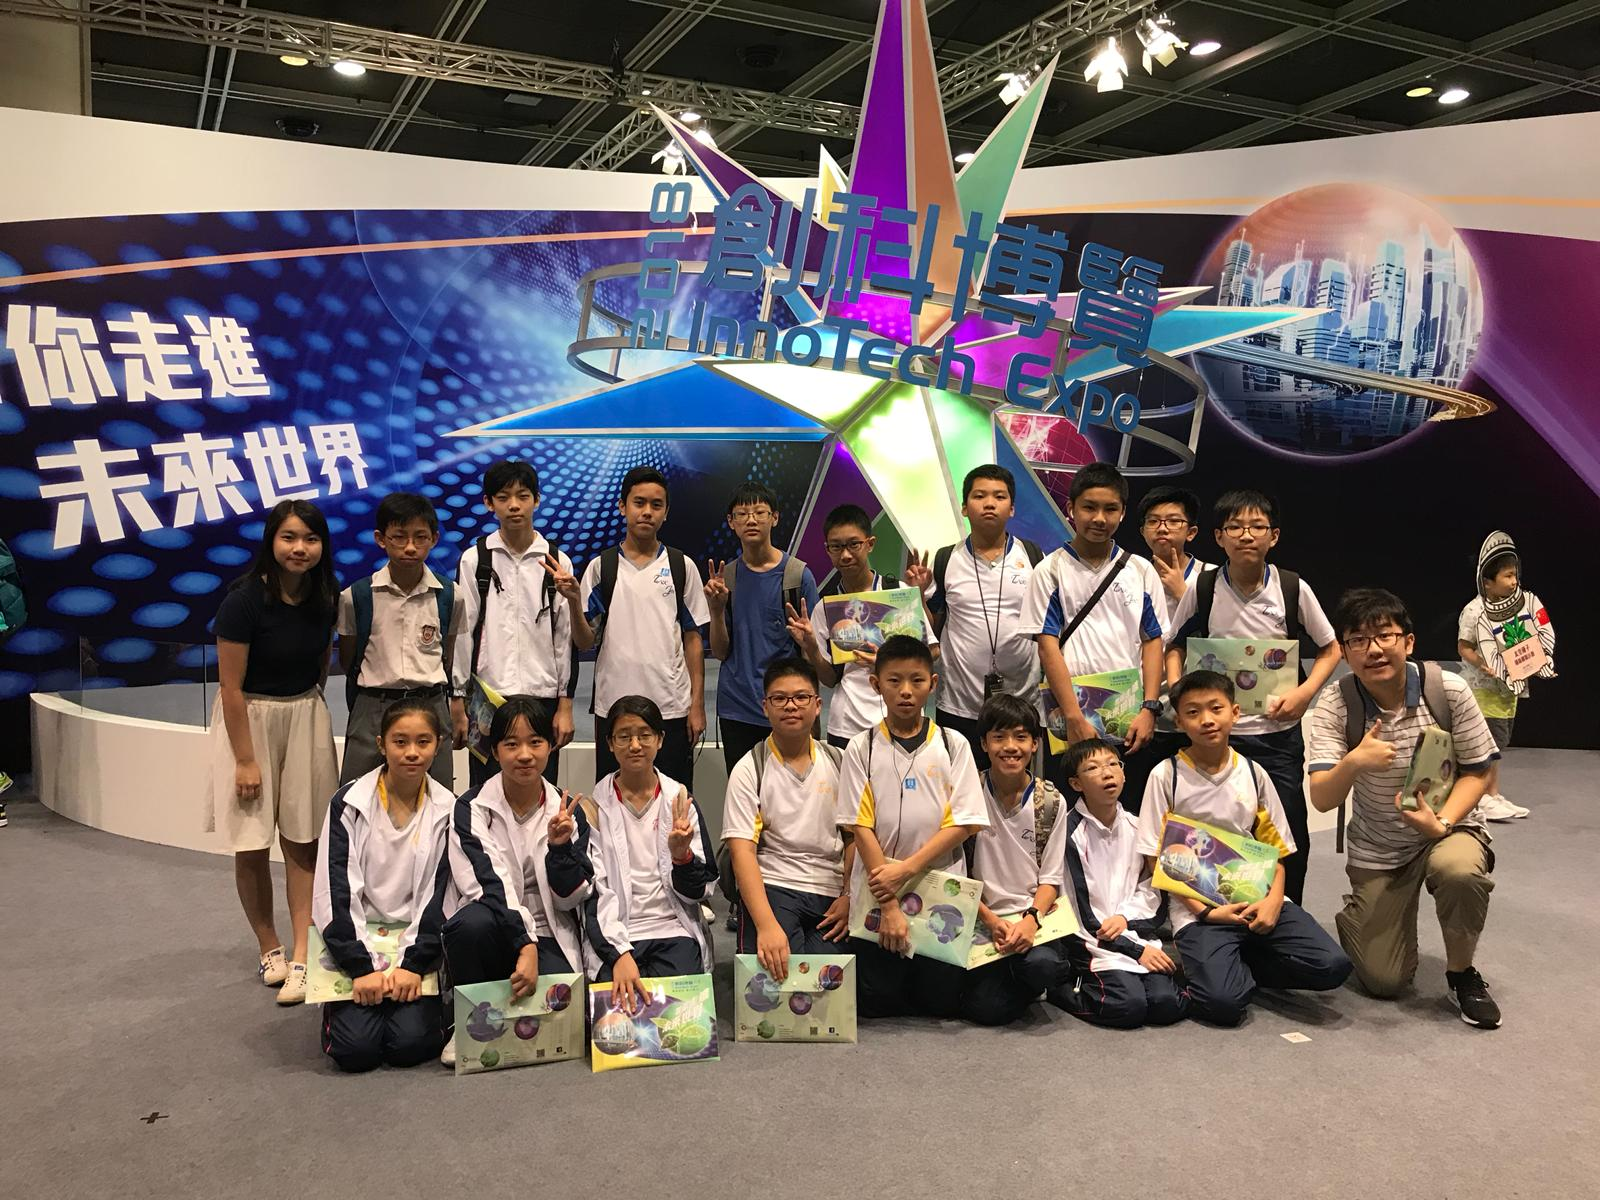 Students and teachers had lots of fun in the InnoTech Expo. They enjoyed it very much.